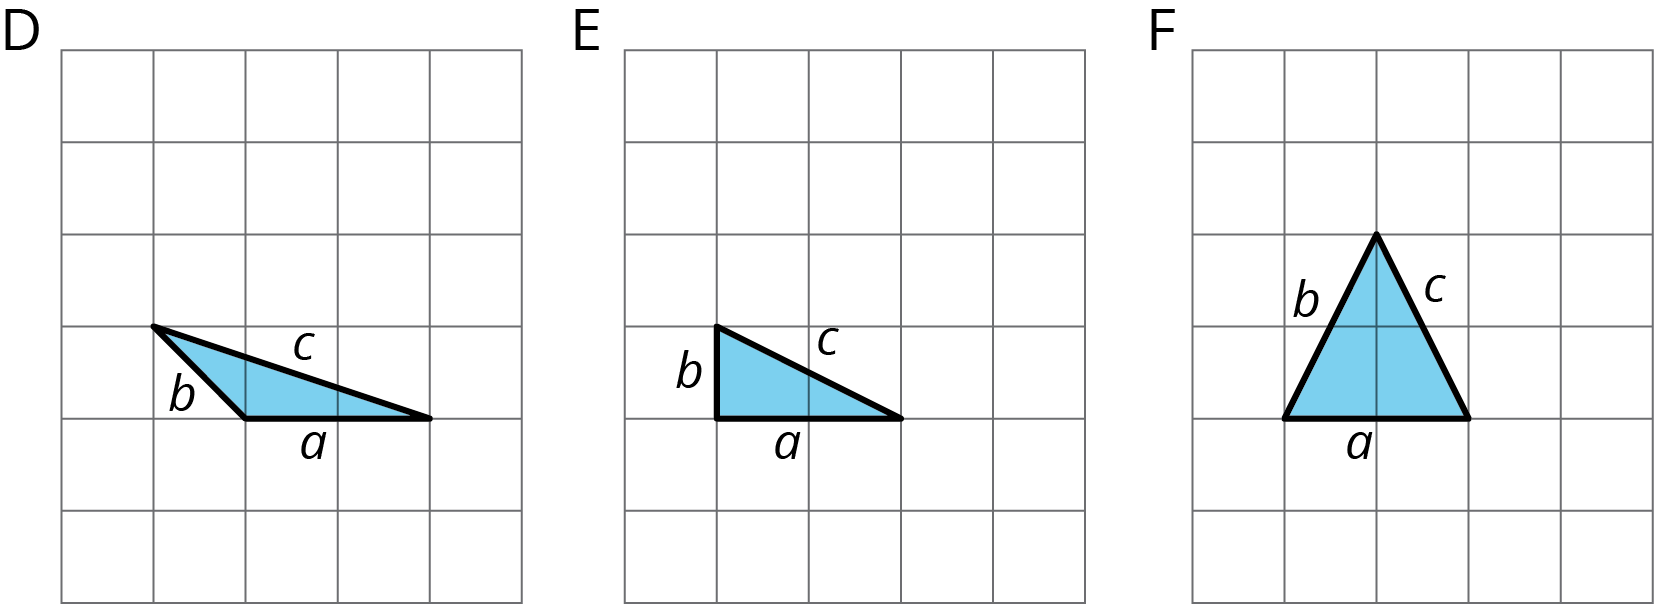 "Three triangles on a square grid labeled ""D,"" ""E,"" and ""F"" with sides a, b, and c. The triangles have the following measurements: Triangle D: Horizontal side a is 2 units. Side b slants upward and to the left. Side c slants downward and to the right. The height of the triangle is 1.   Triangle E: Horizontal side a is 2 units. Vertical side b is 1 unit. Diagonal side c slants downward and to the right and the triangle has a height of 1 unit.    Triangle F: Horizontal side a is 2 units. Side b and side c are equal in length. The triangle has a height of 2 units."